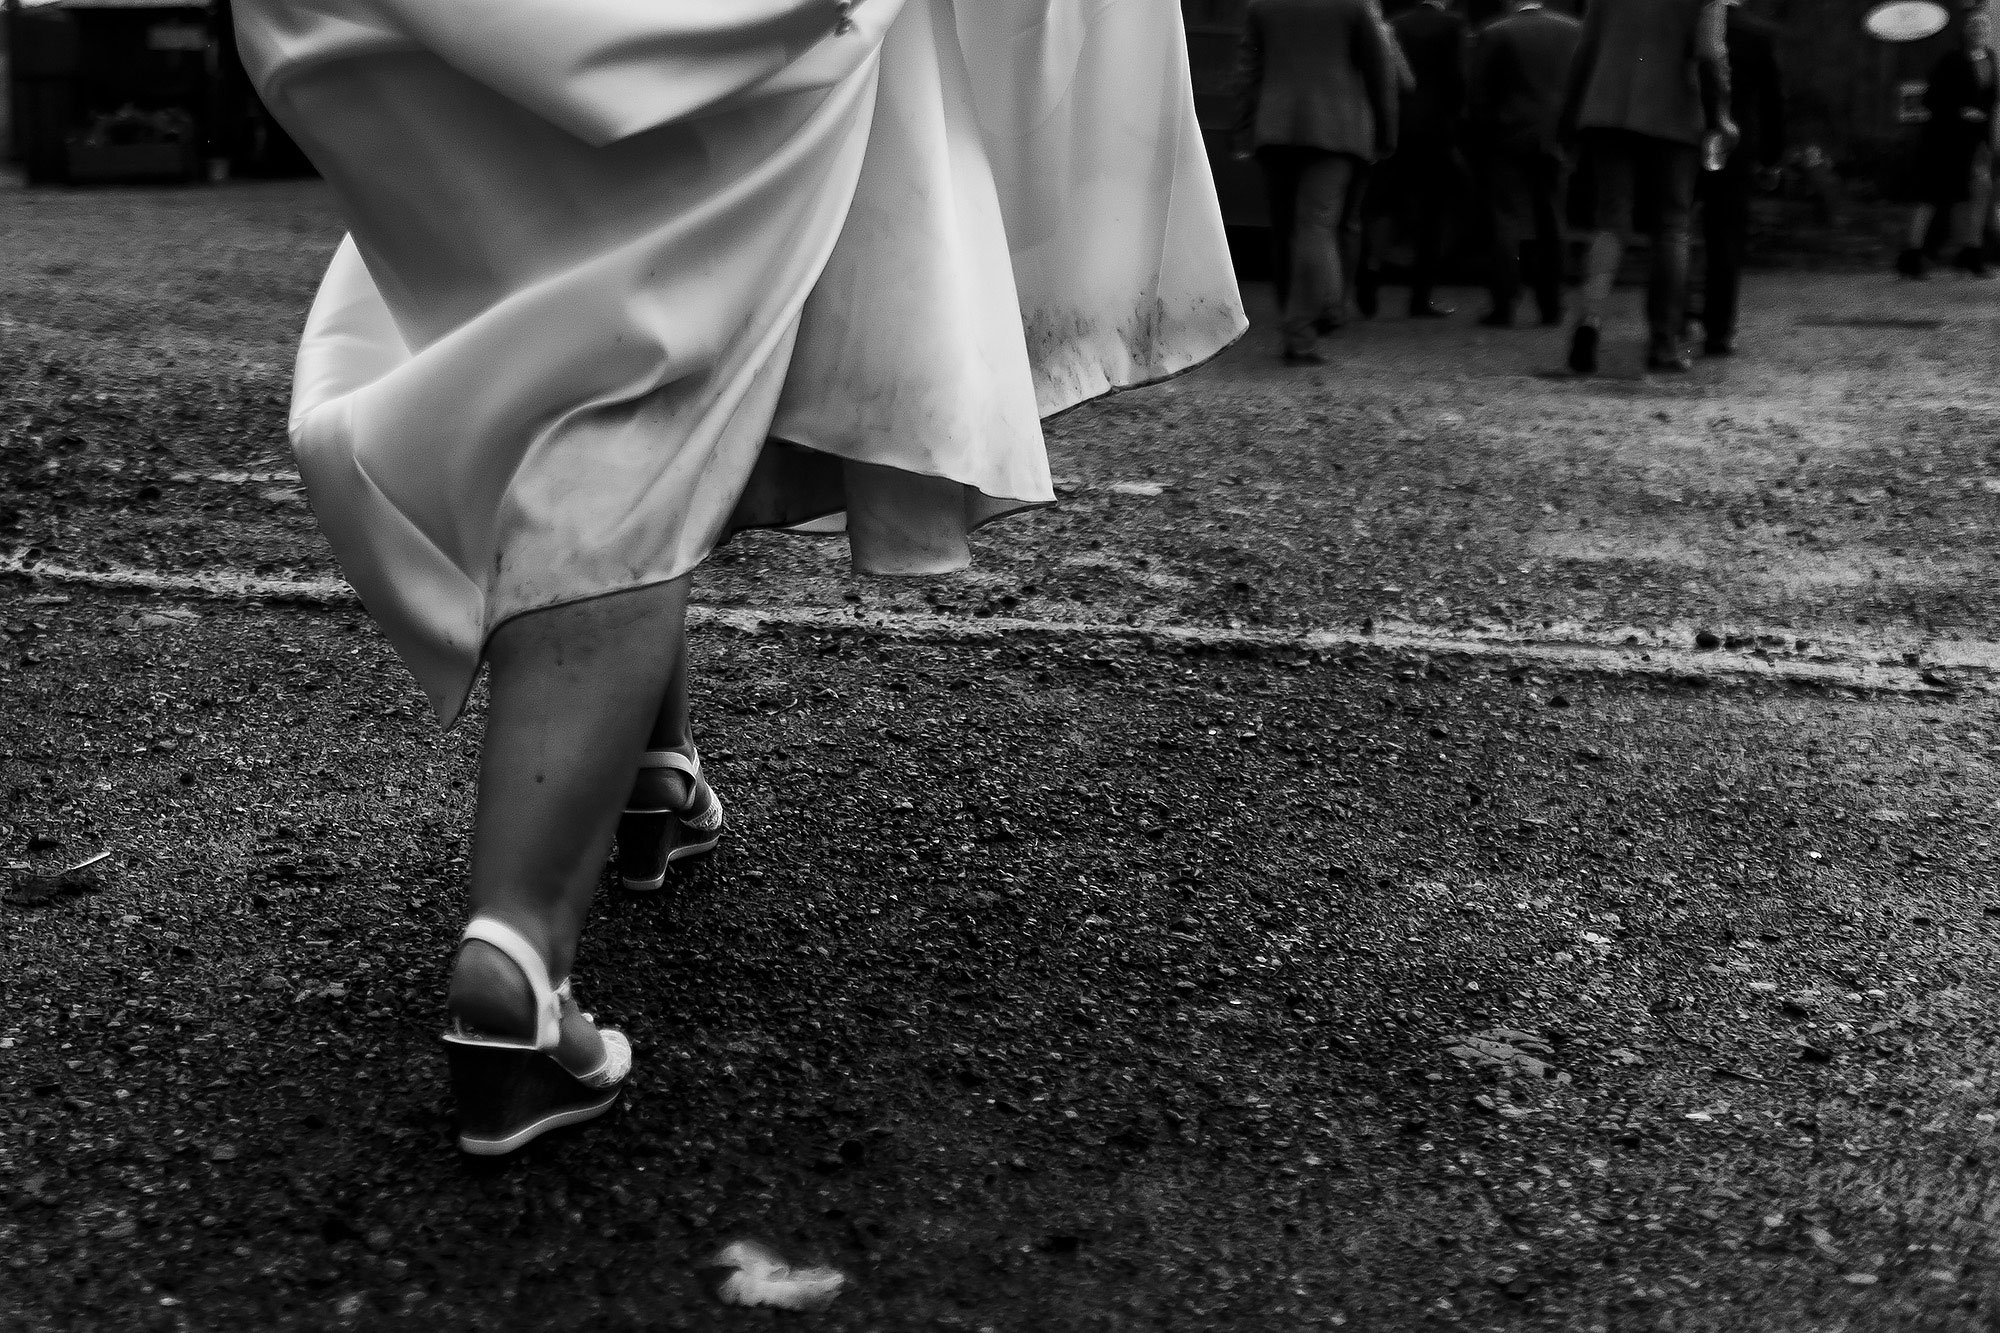 Bride holding dress high showing dirt and rain down the leg as she walks to wedding reception at Wellbeing Farm | Wellbeing Farm wedding photographs by Toni Darcy Photography